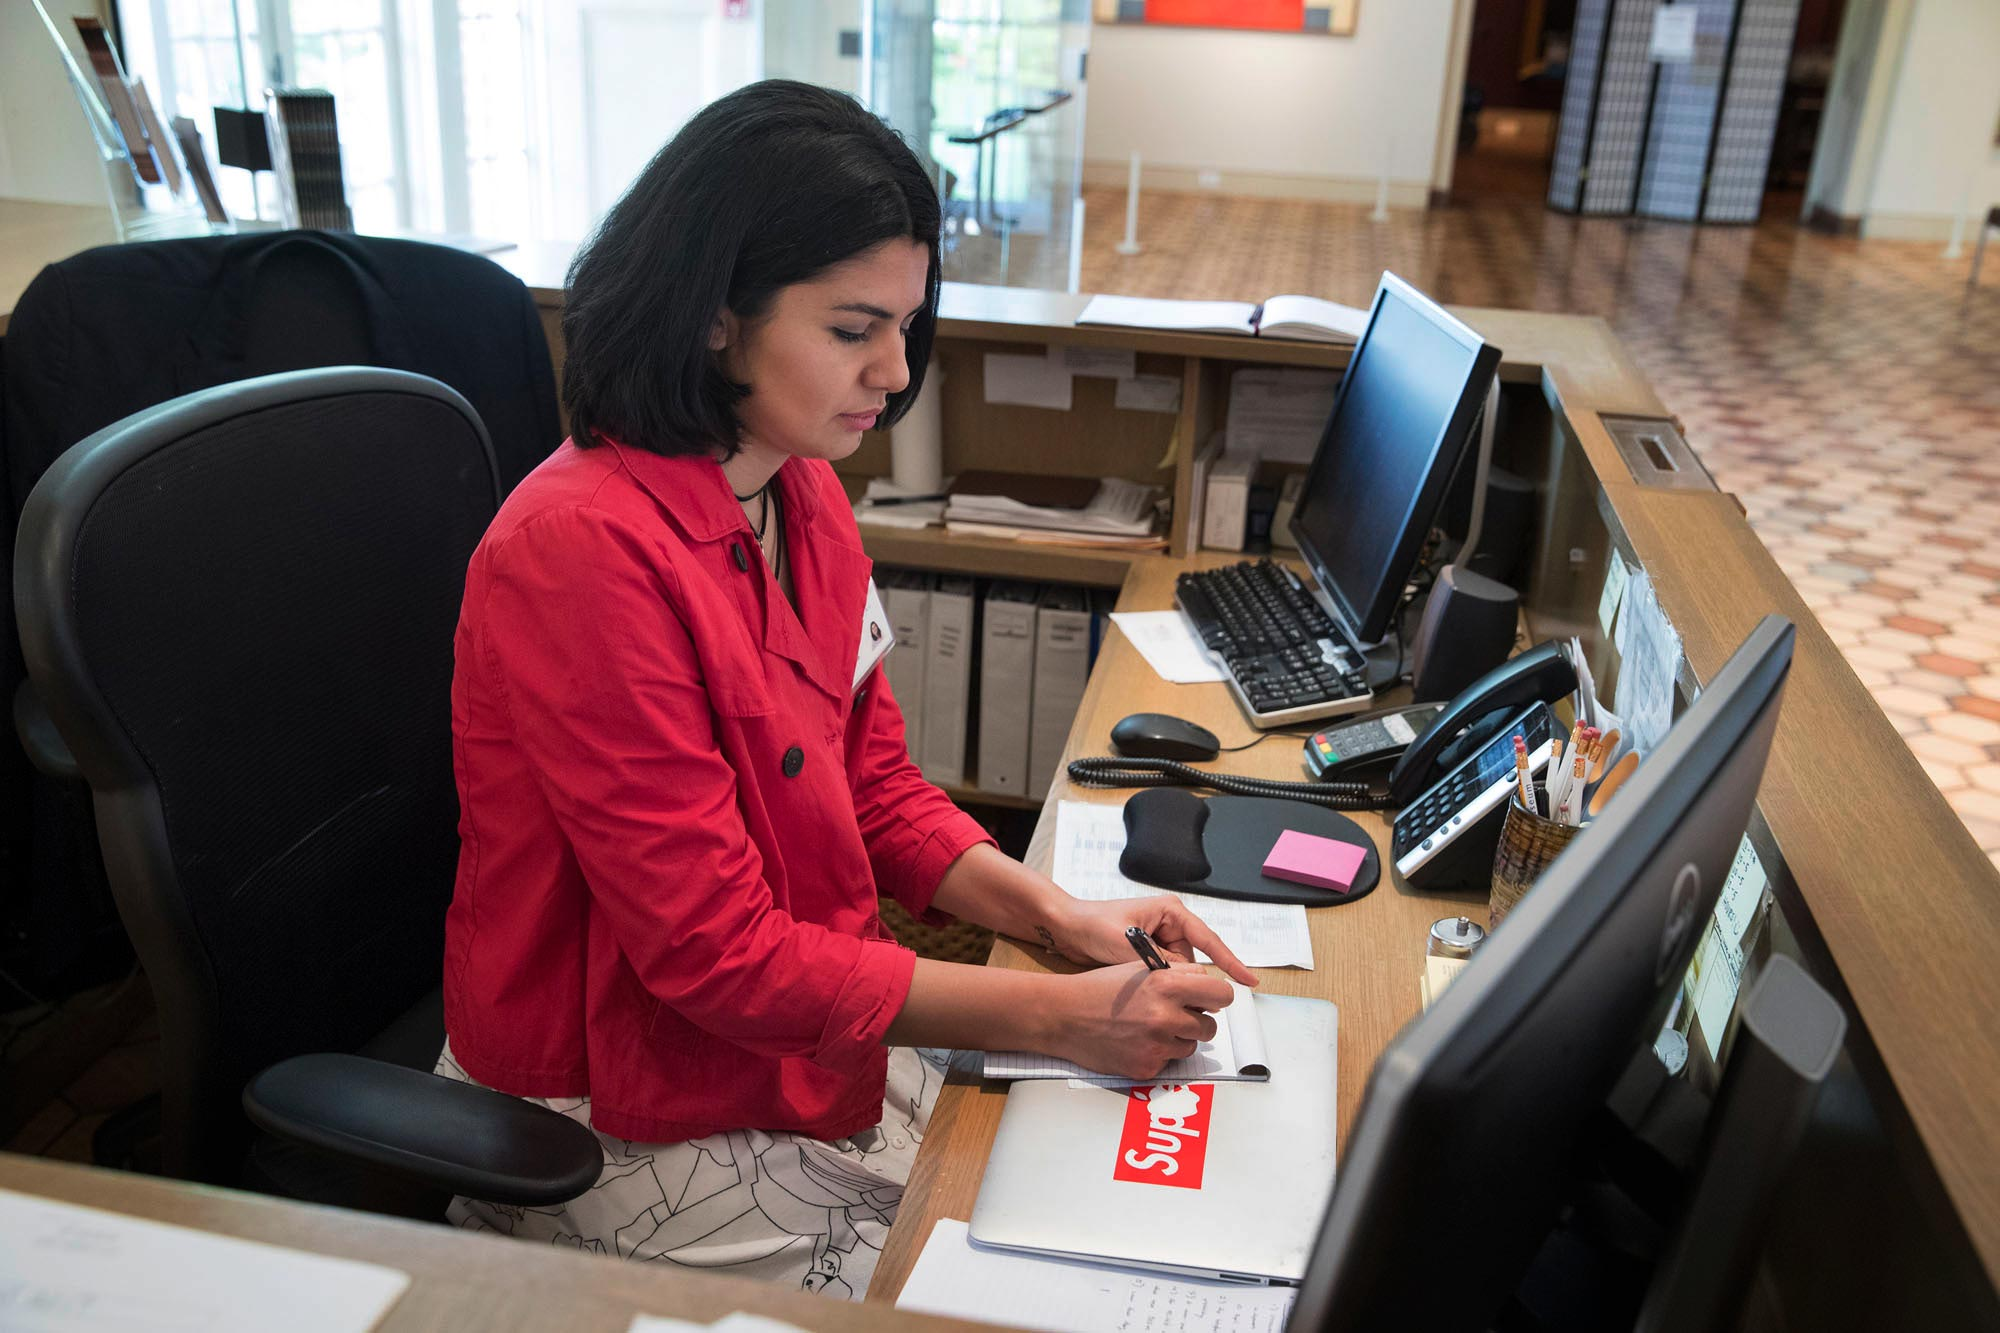 Haghtalab's many roles at the museum including working as the head receptionist.